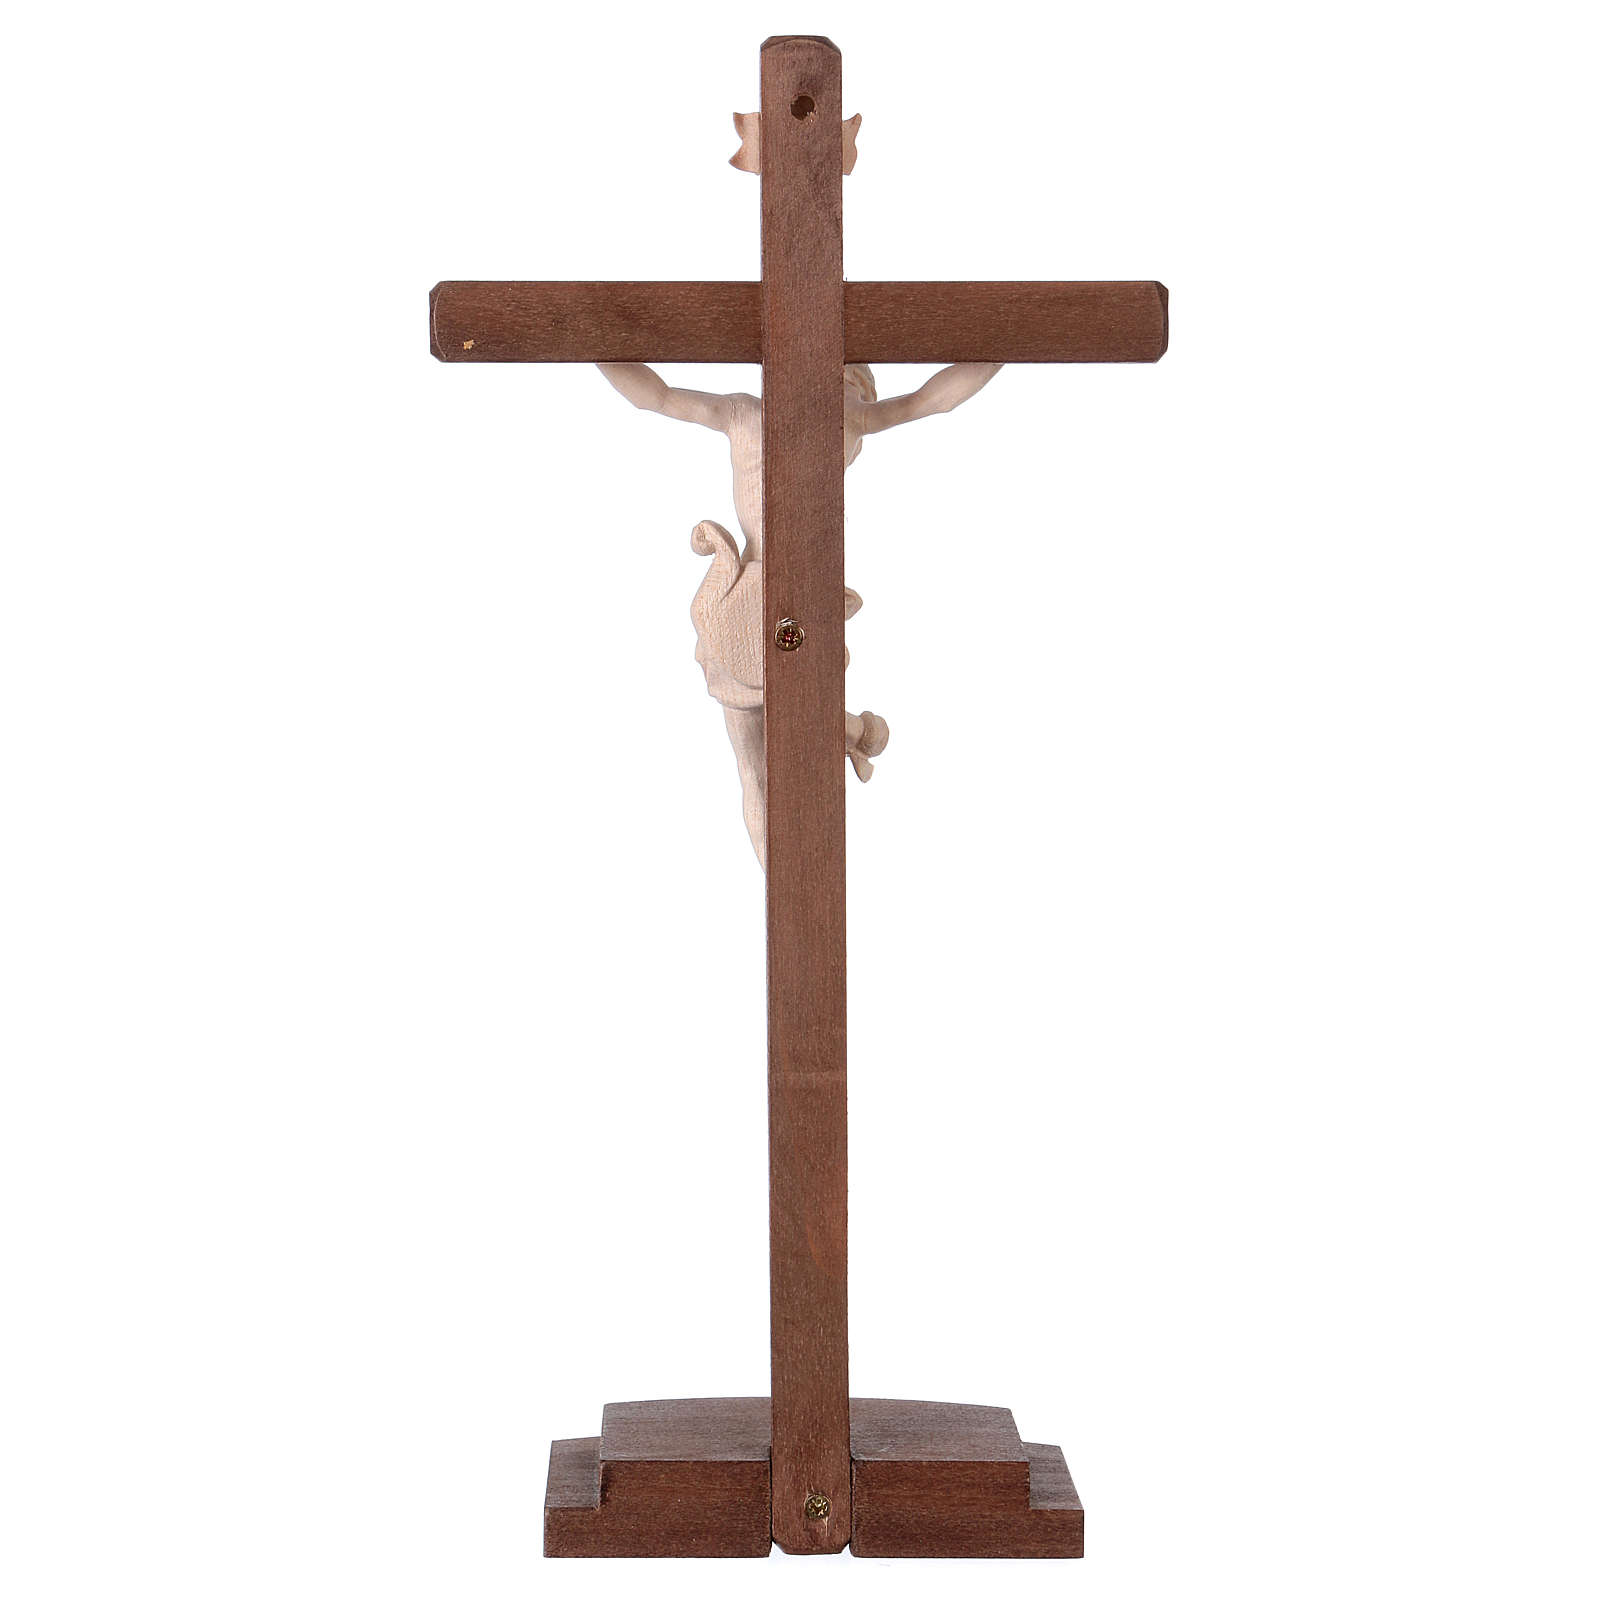 Leonardo crucifix in natural wood with cross and base 4